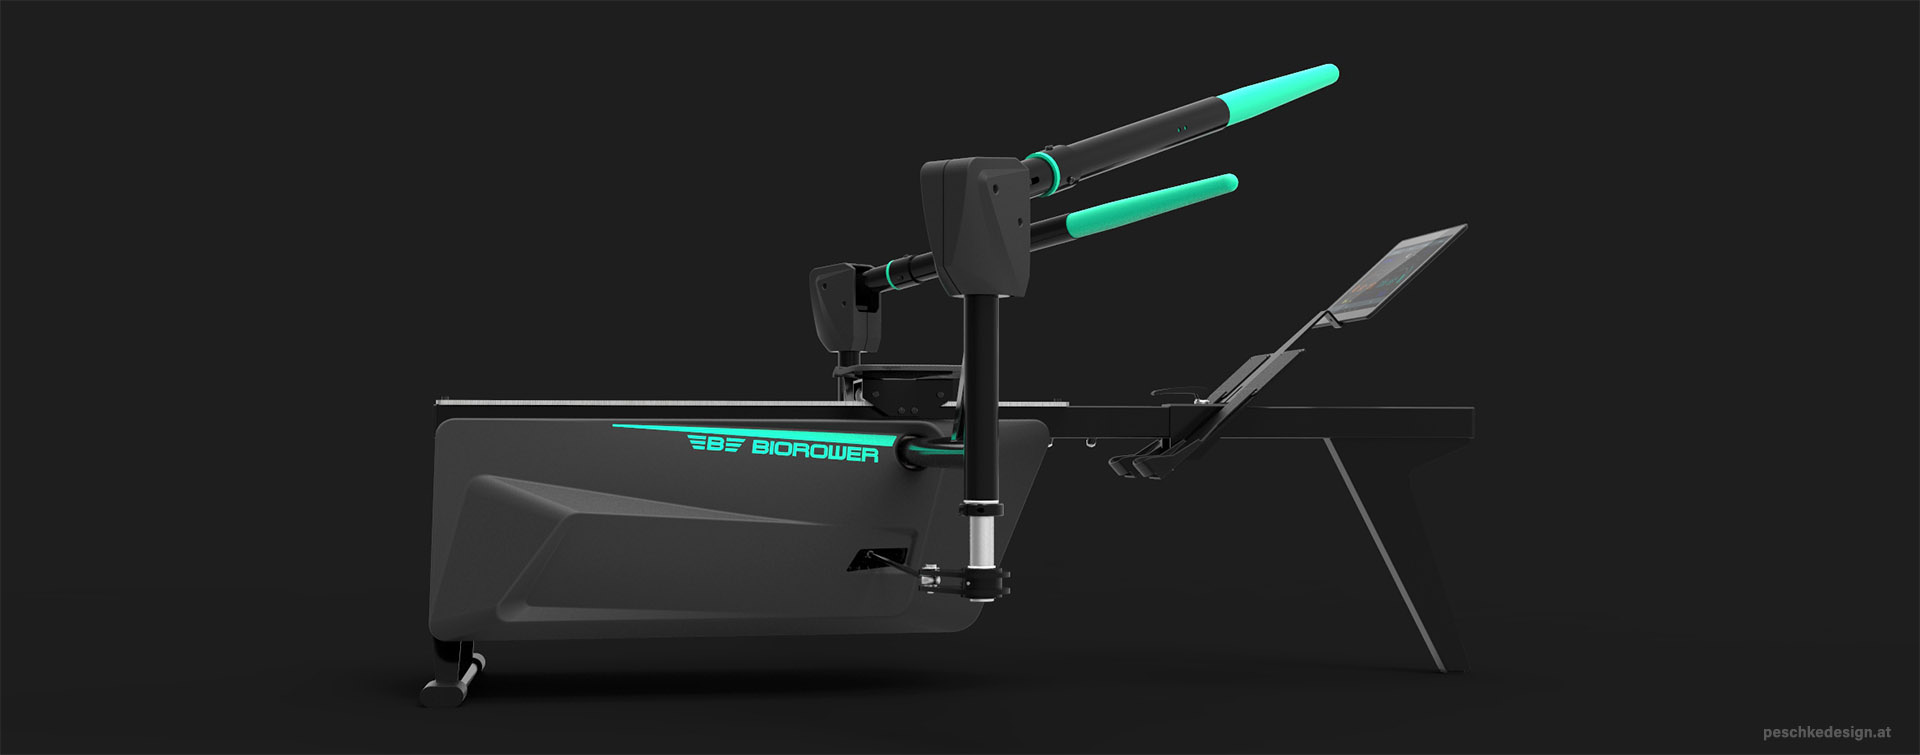 biorower rowing trainer design, viewed from right